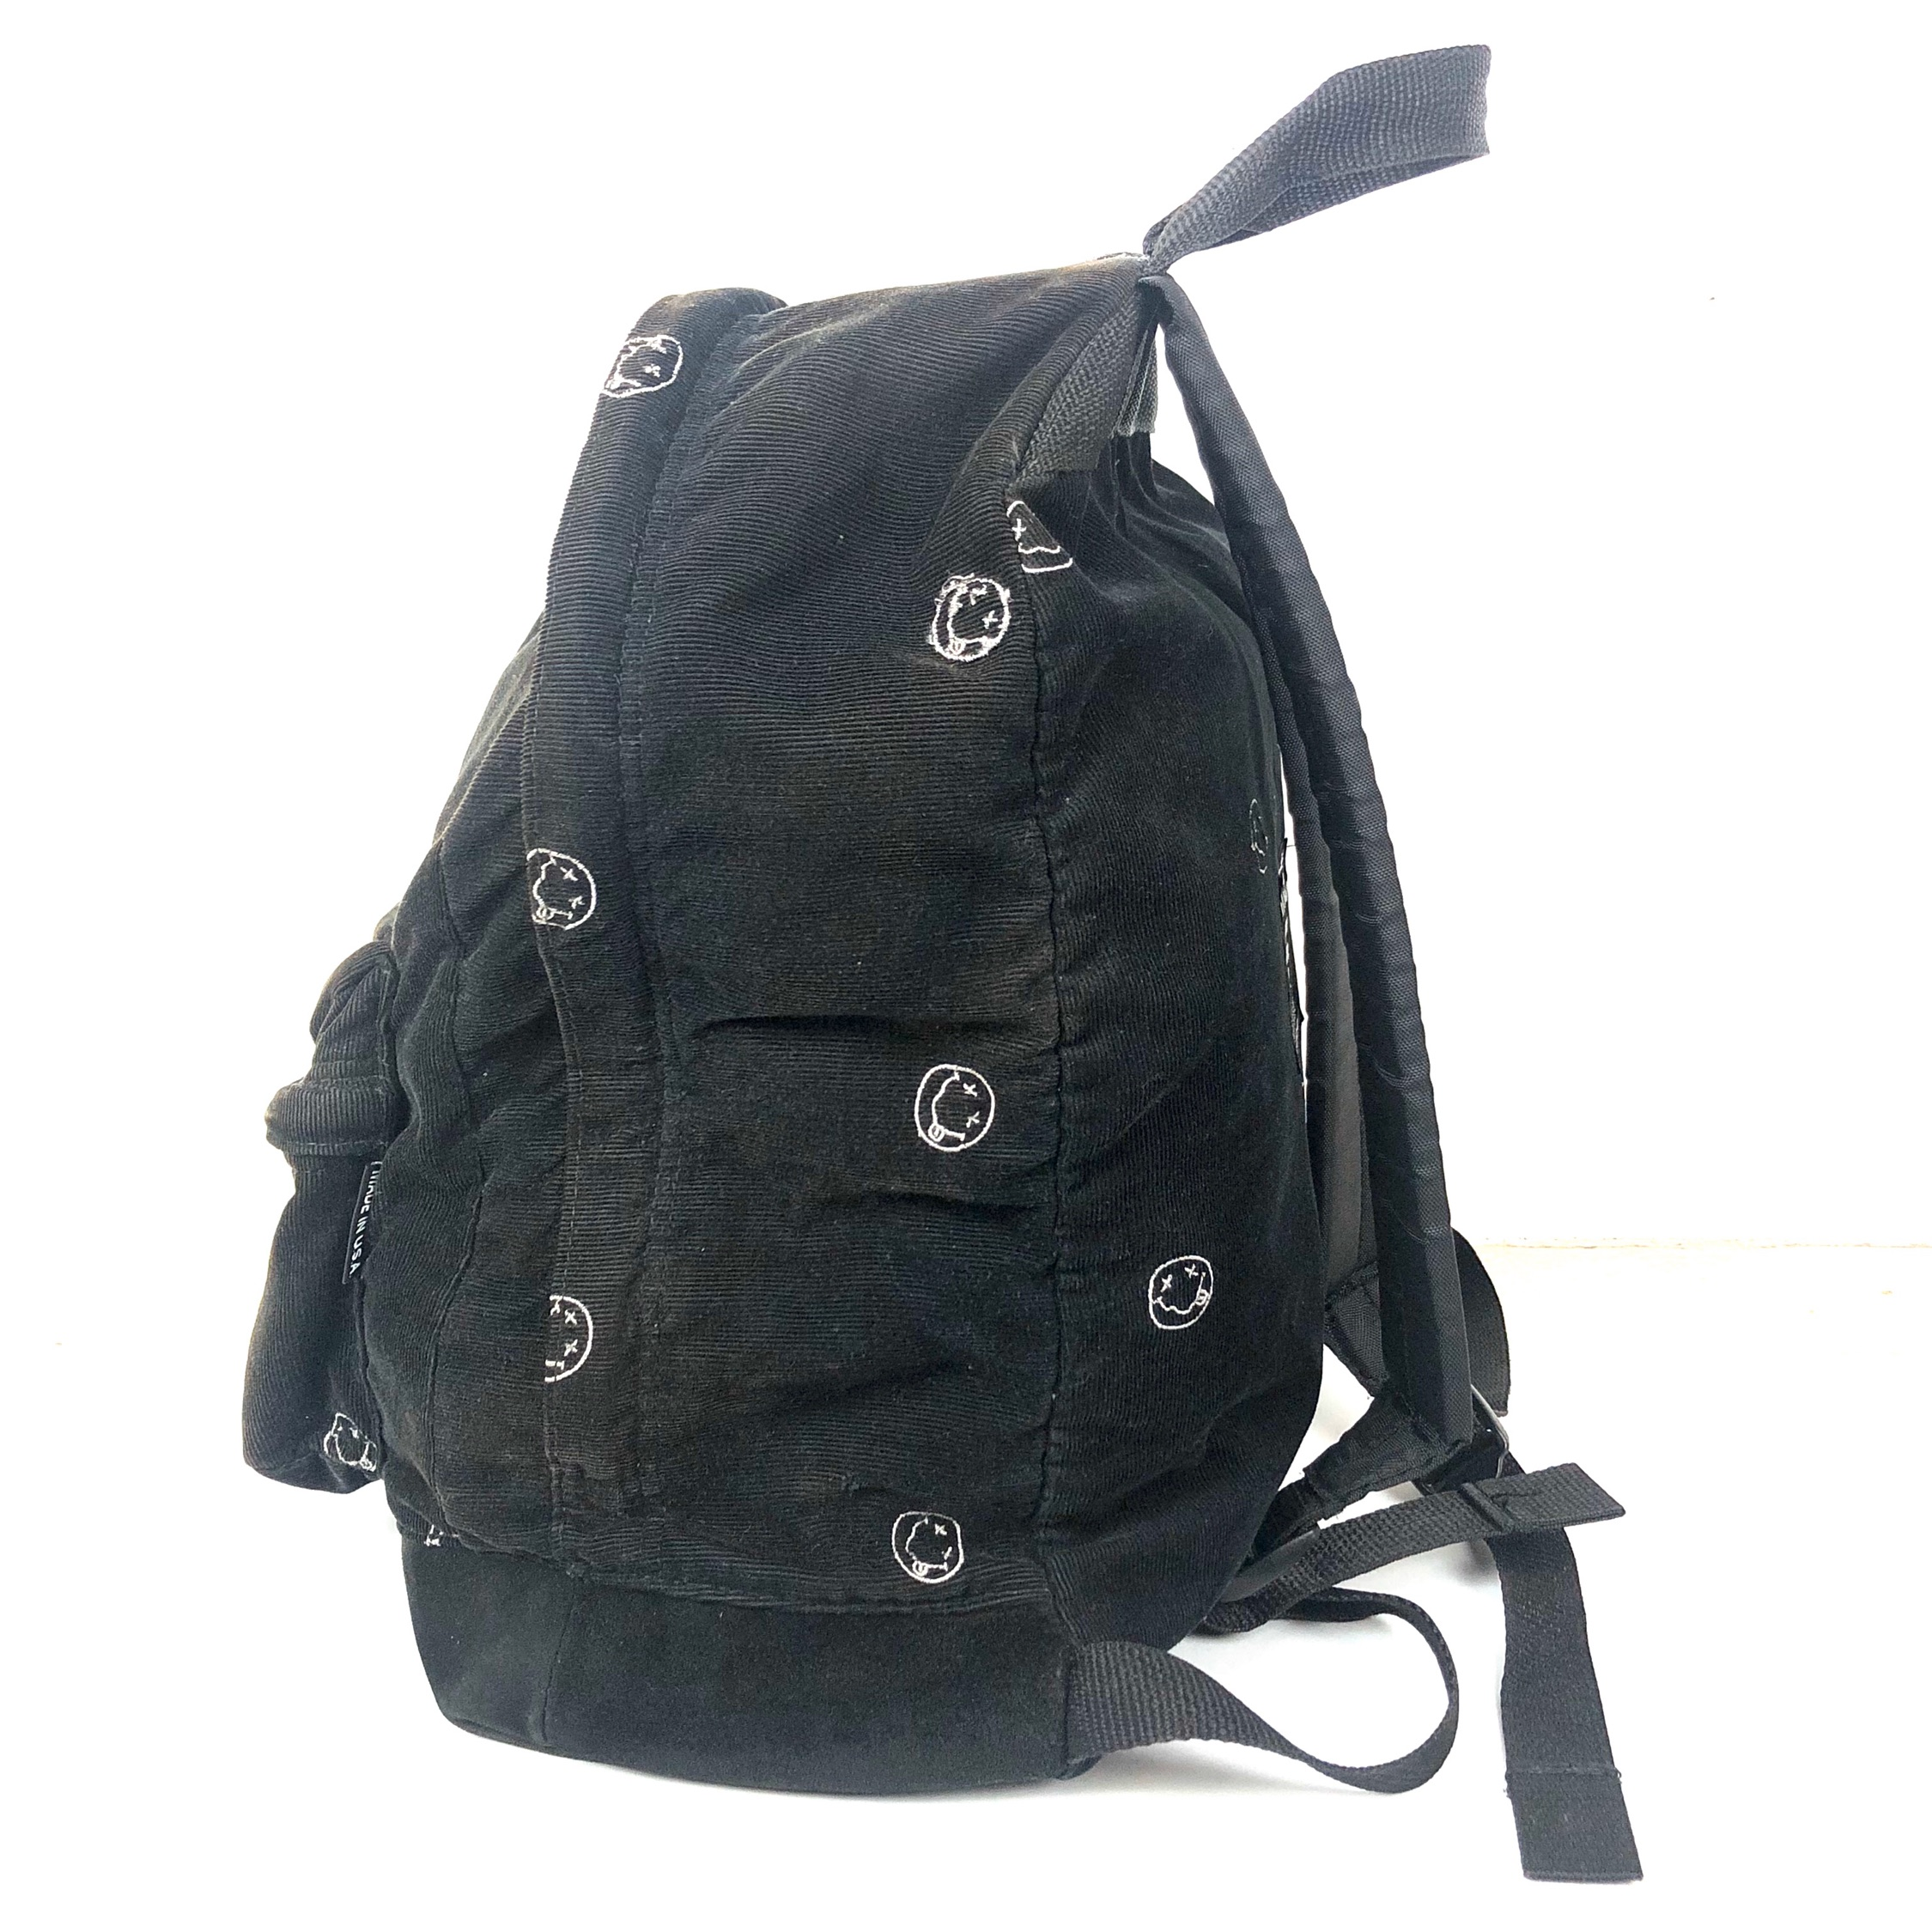 Rare Hysteric Glamour X Outdoor Nirvana Back Pack